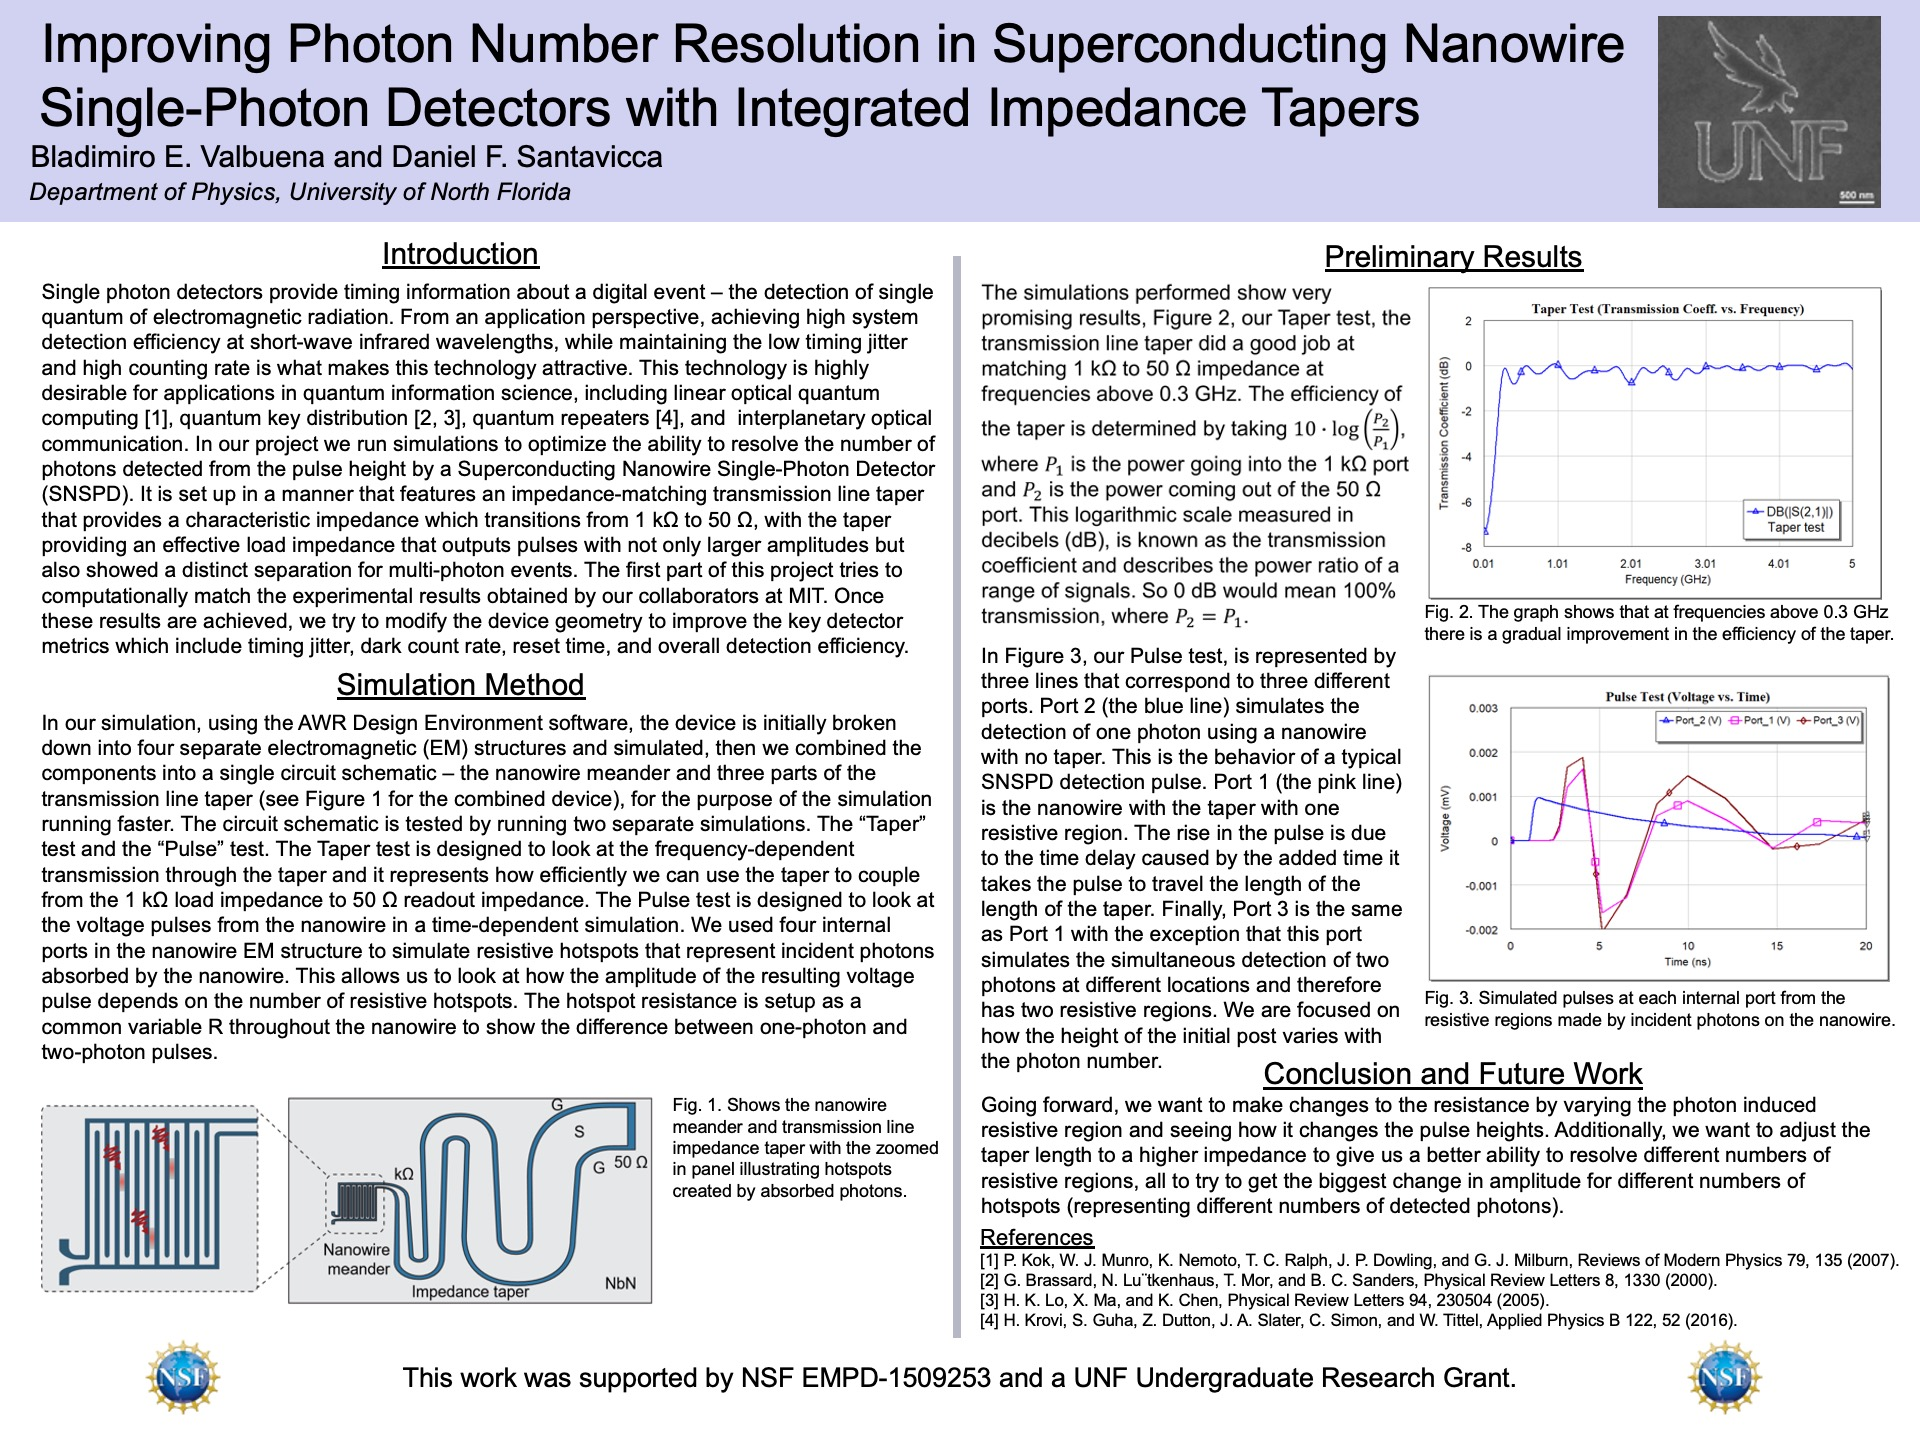 Improving Photon Number Resolution in Superconducting Nanowire Single-Photon Detectors with Integrated Impedance Tapers poster